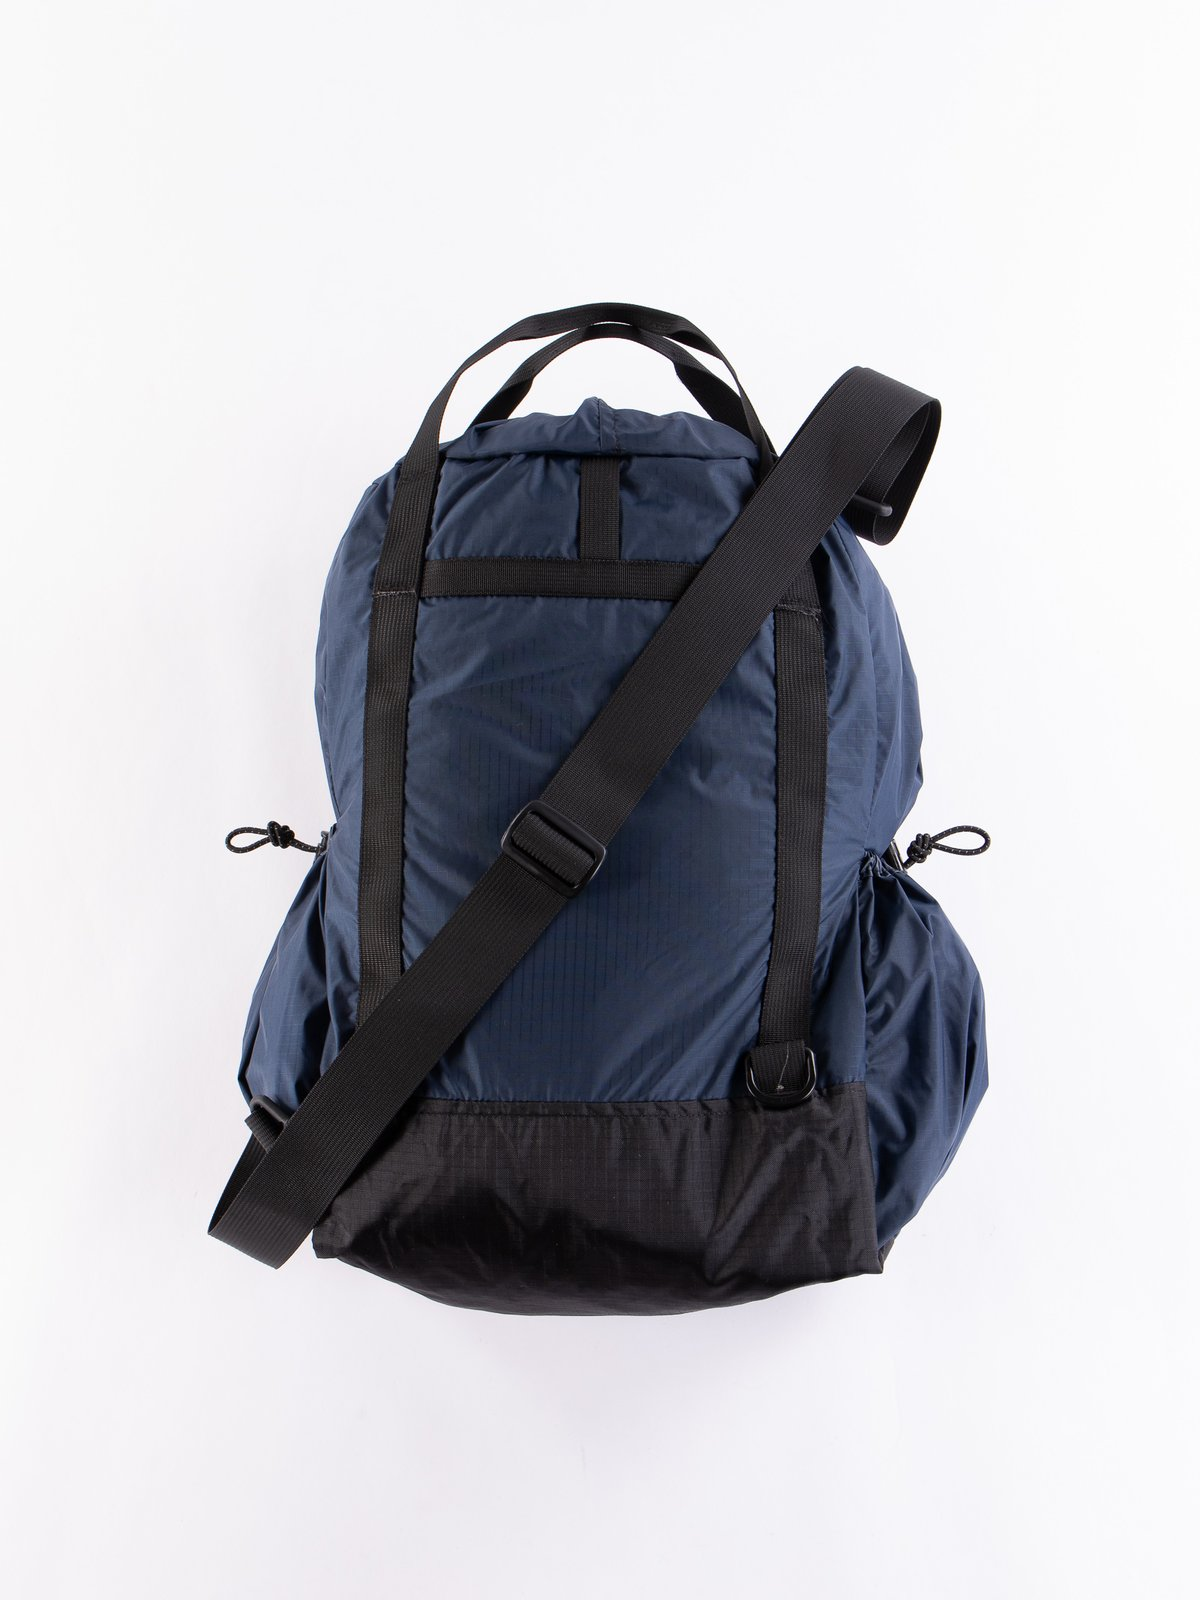 Navy Nylon Ripstop UL 3 Way Bag - Image 3